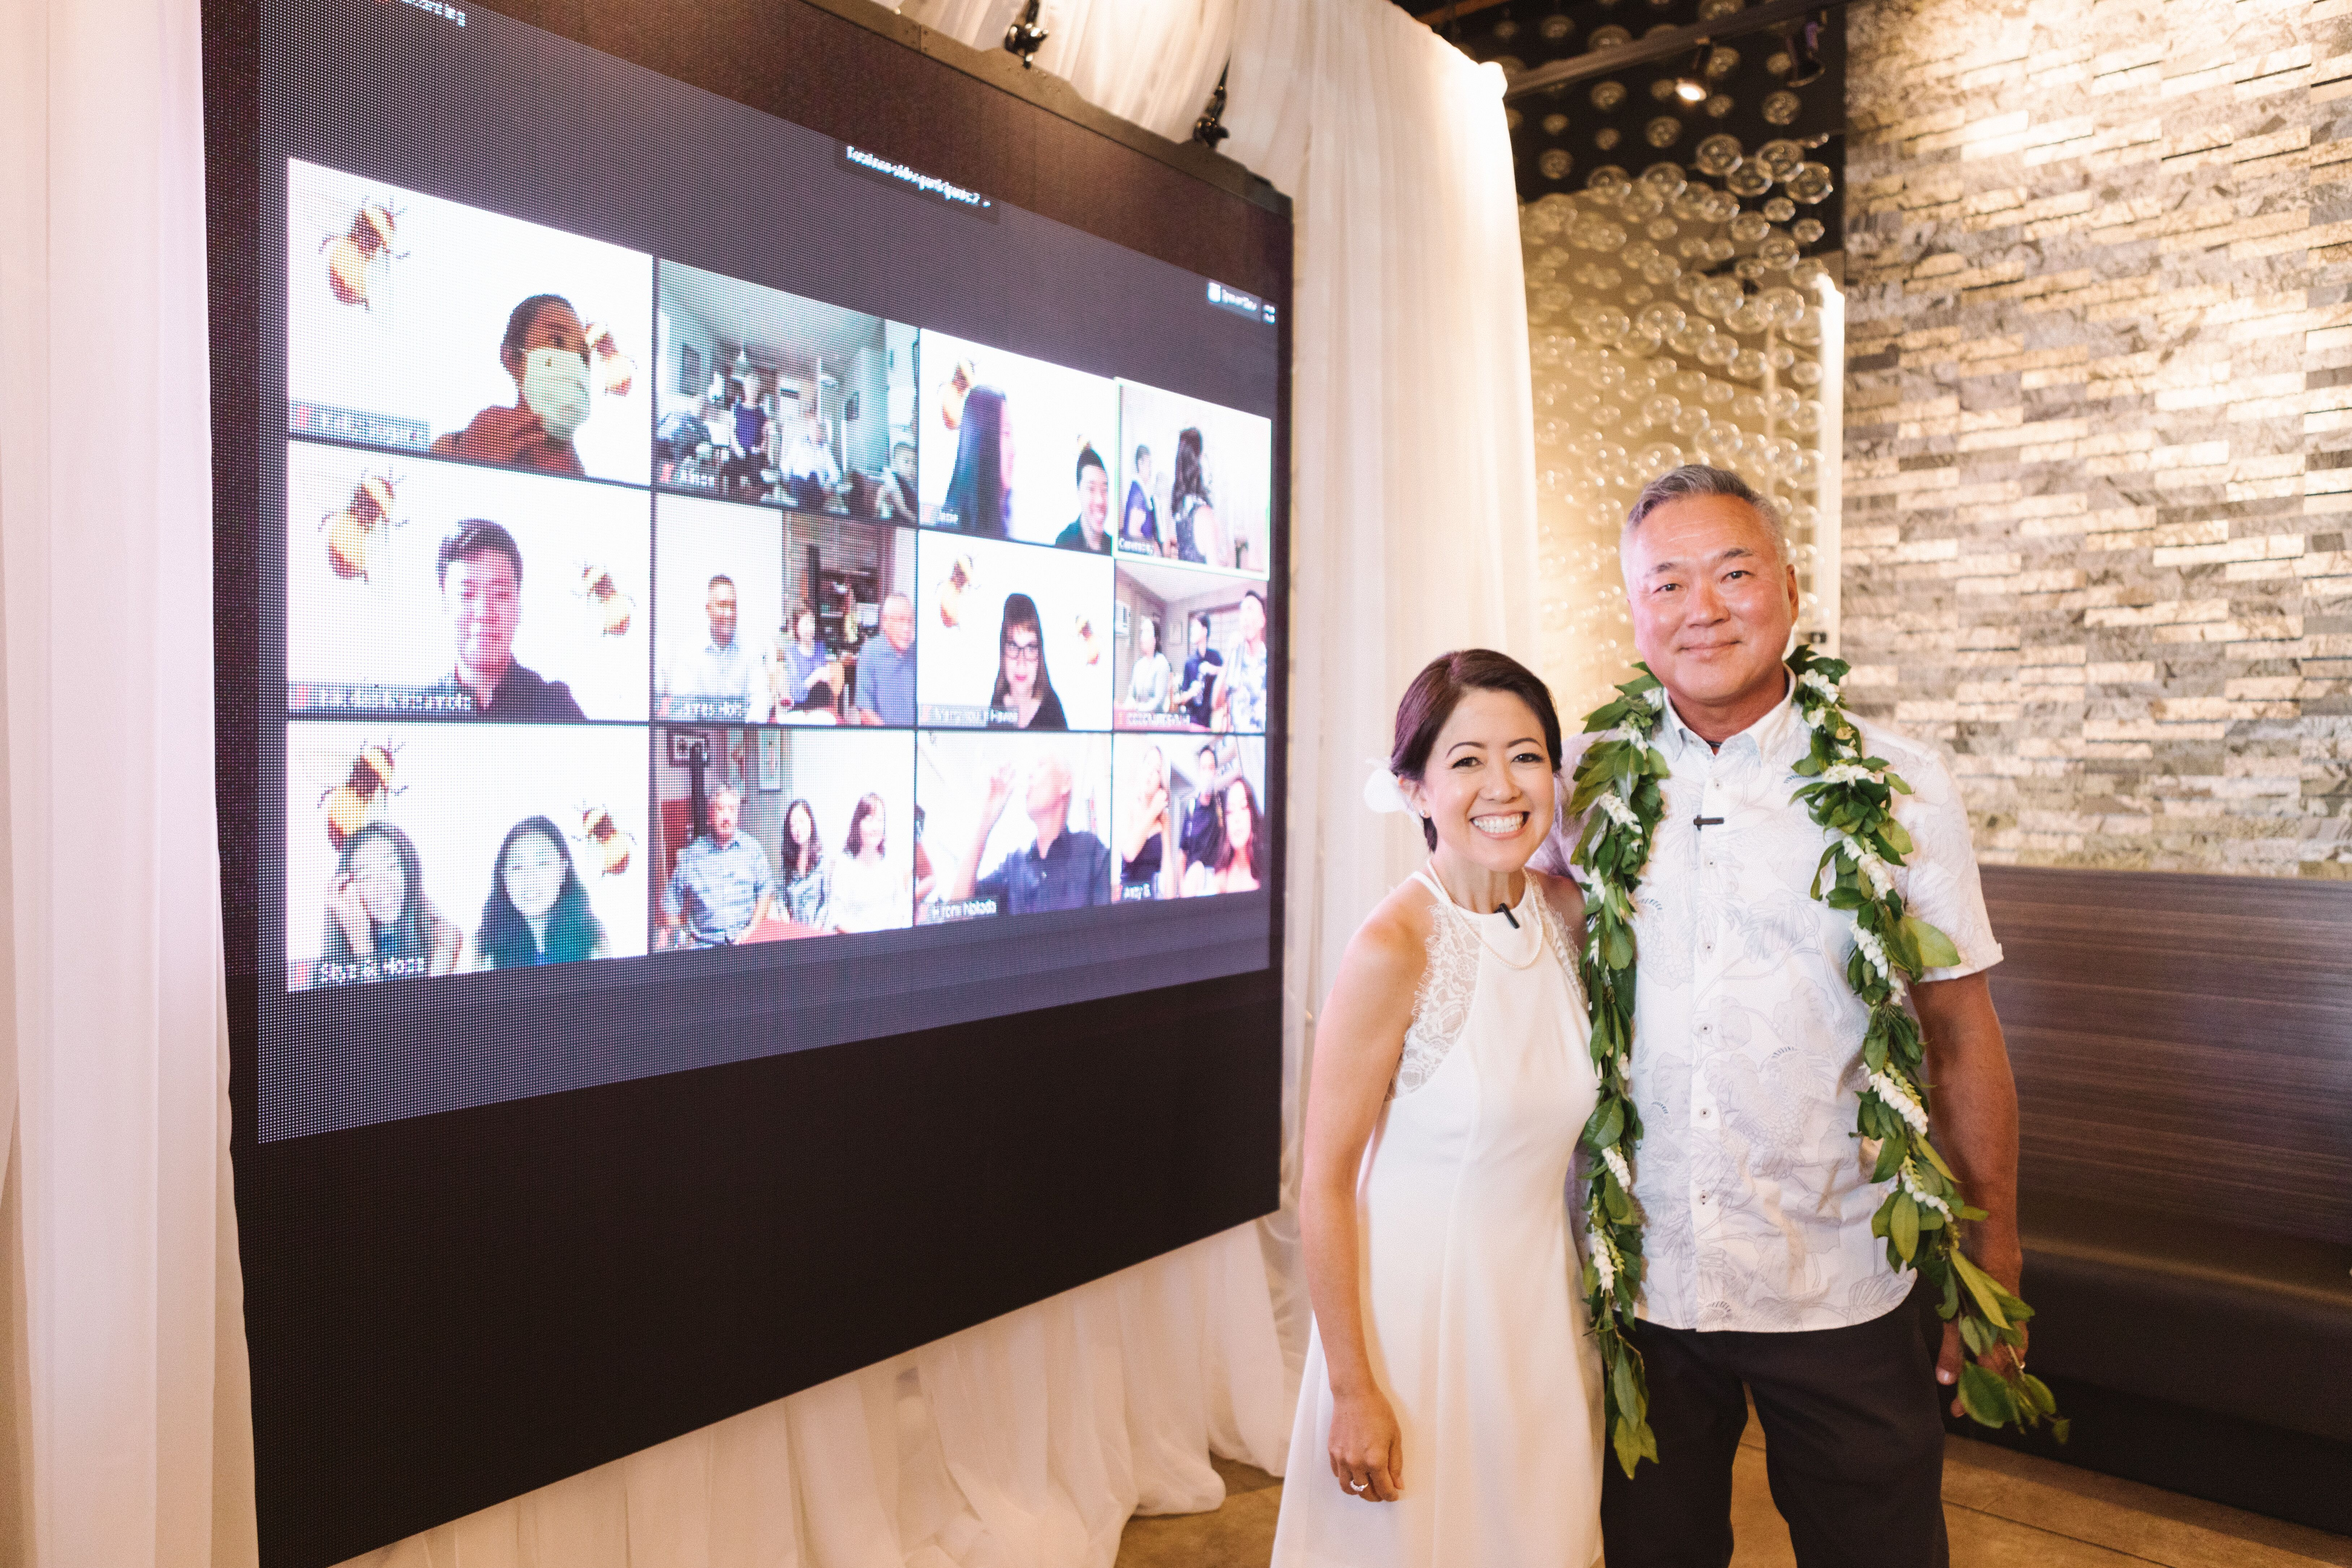 How to Throw a Virtual Wedding, From Start to Finish